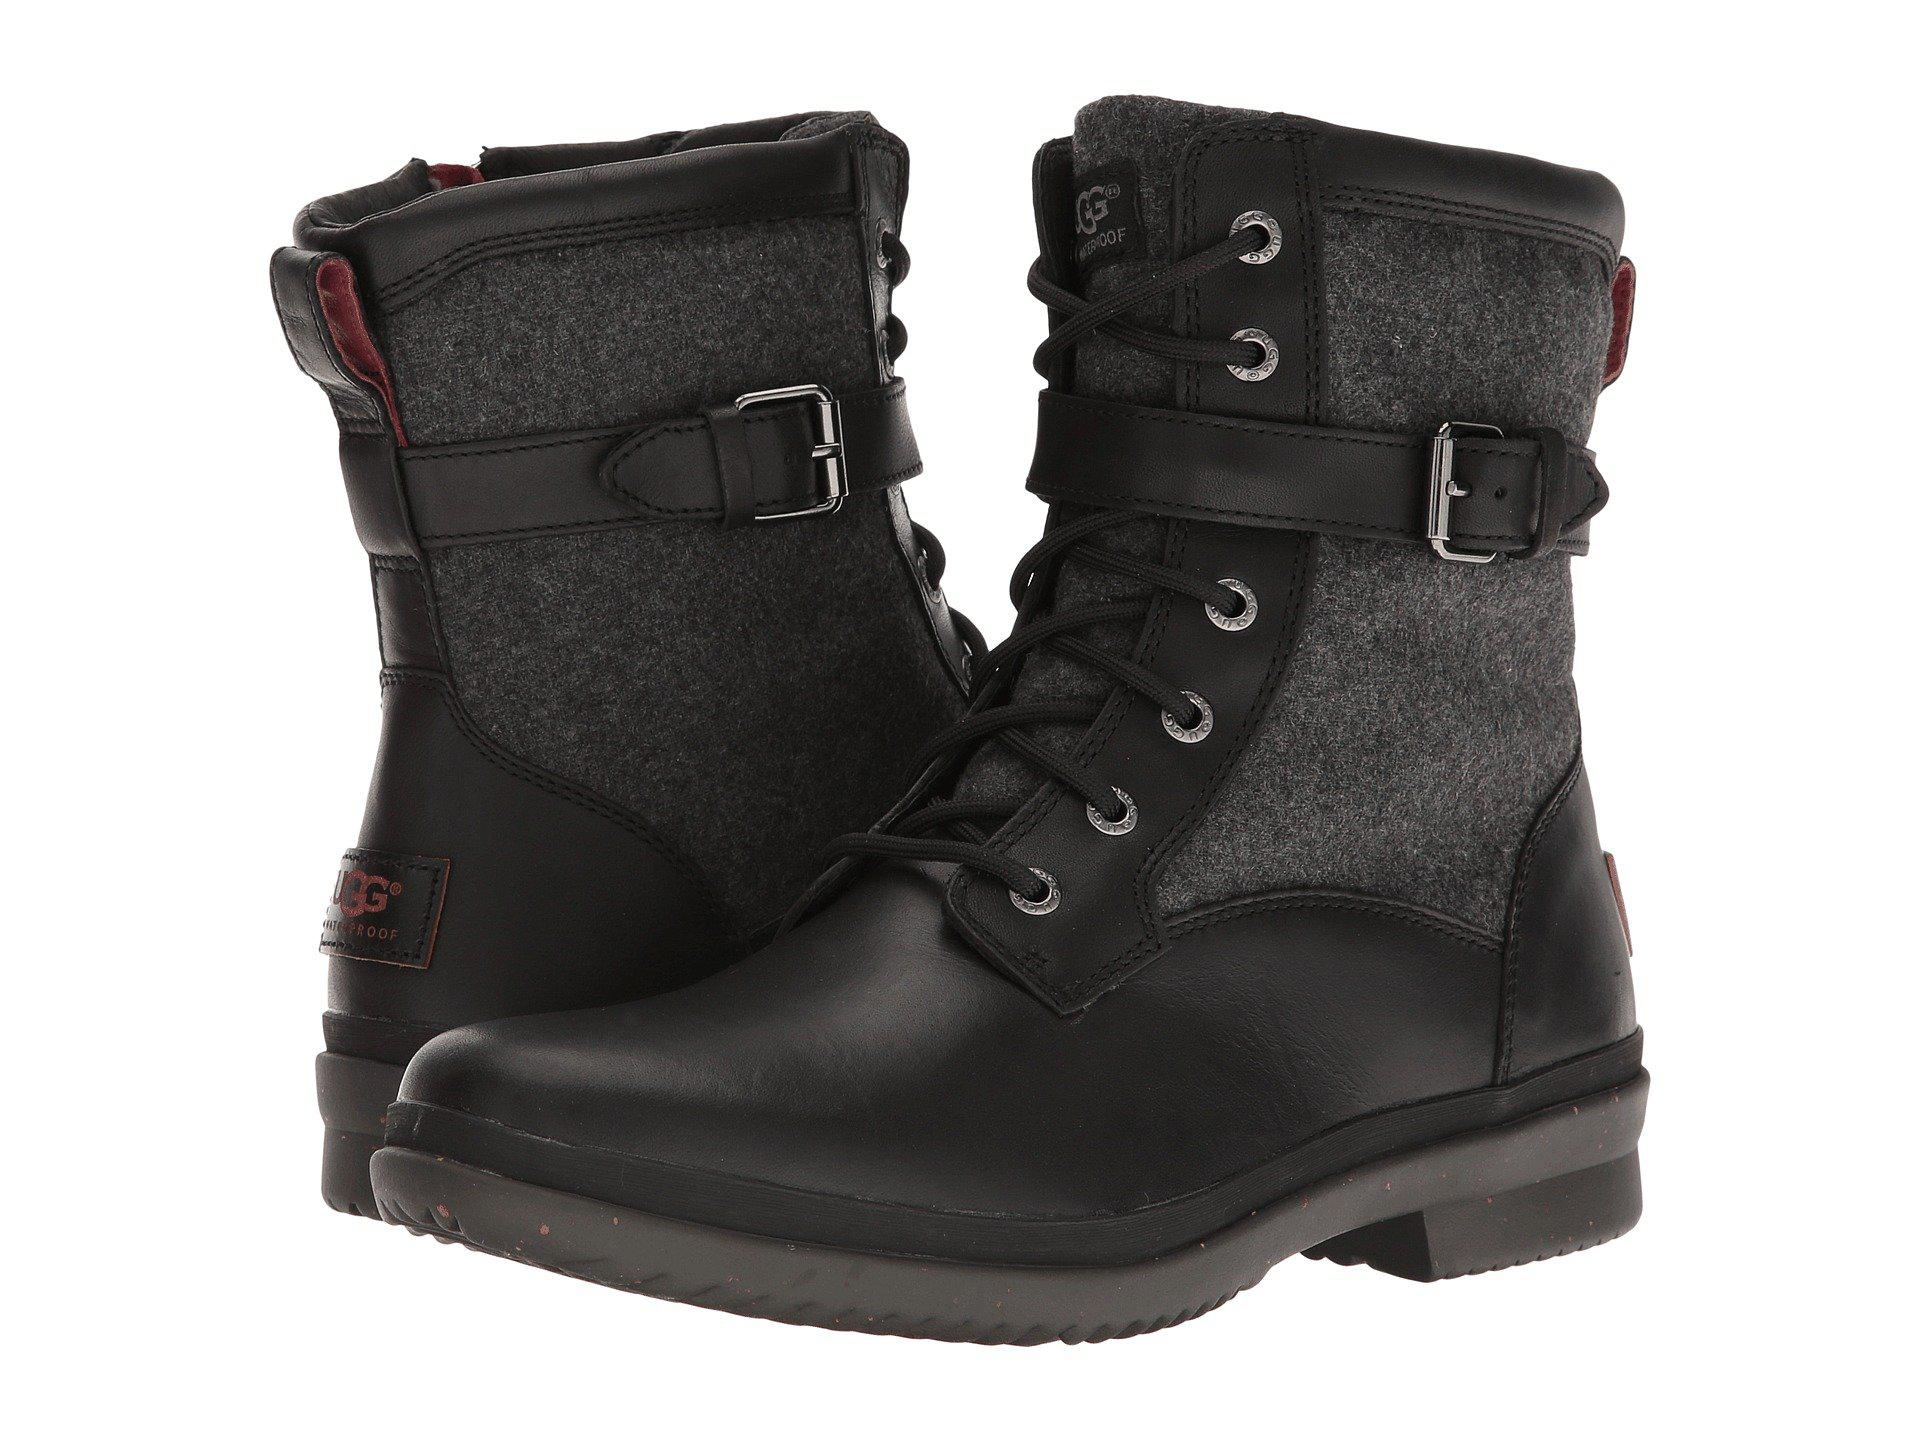 e320271bd5f Lyst - UGG Kesey (chestnut) Women's Boots in Black